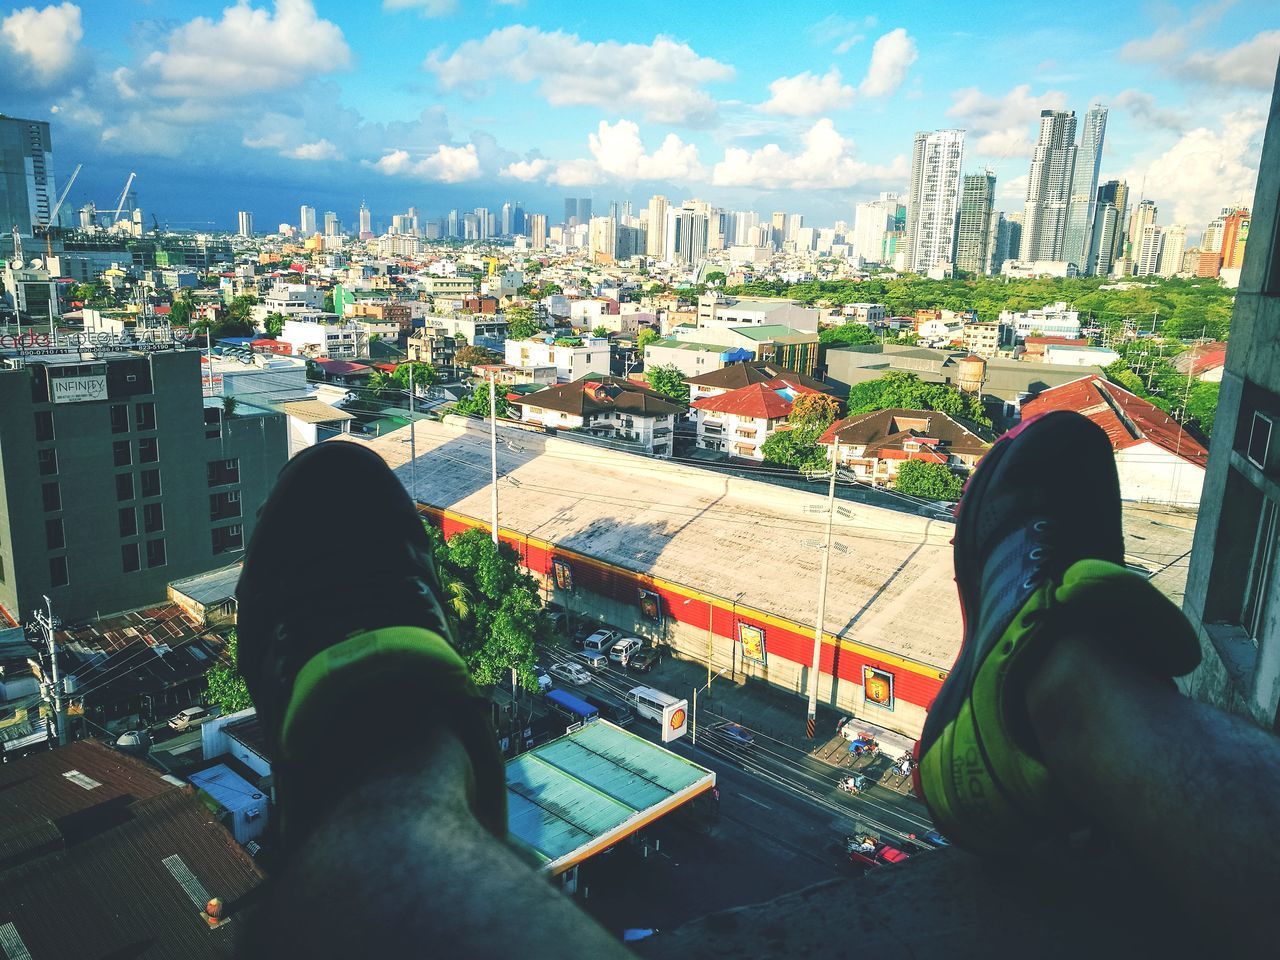 Out Of The Box Human Body Part Limb Low Section Human Leg Personal Perspective Cloud - Sky Human Foot Shoe Human Hand Human Arm People High Angle View Adult Only Men Adults Only Men Cityscape Lifestyles Point Of View Real People EyeemPhilippines